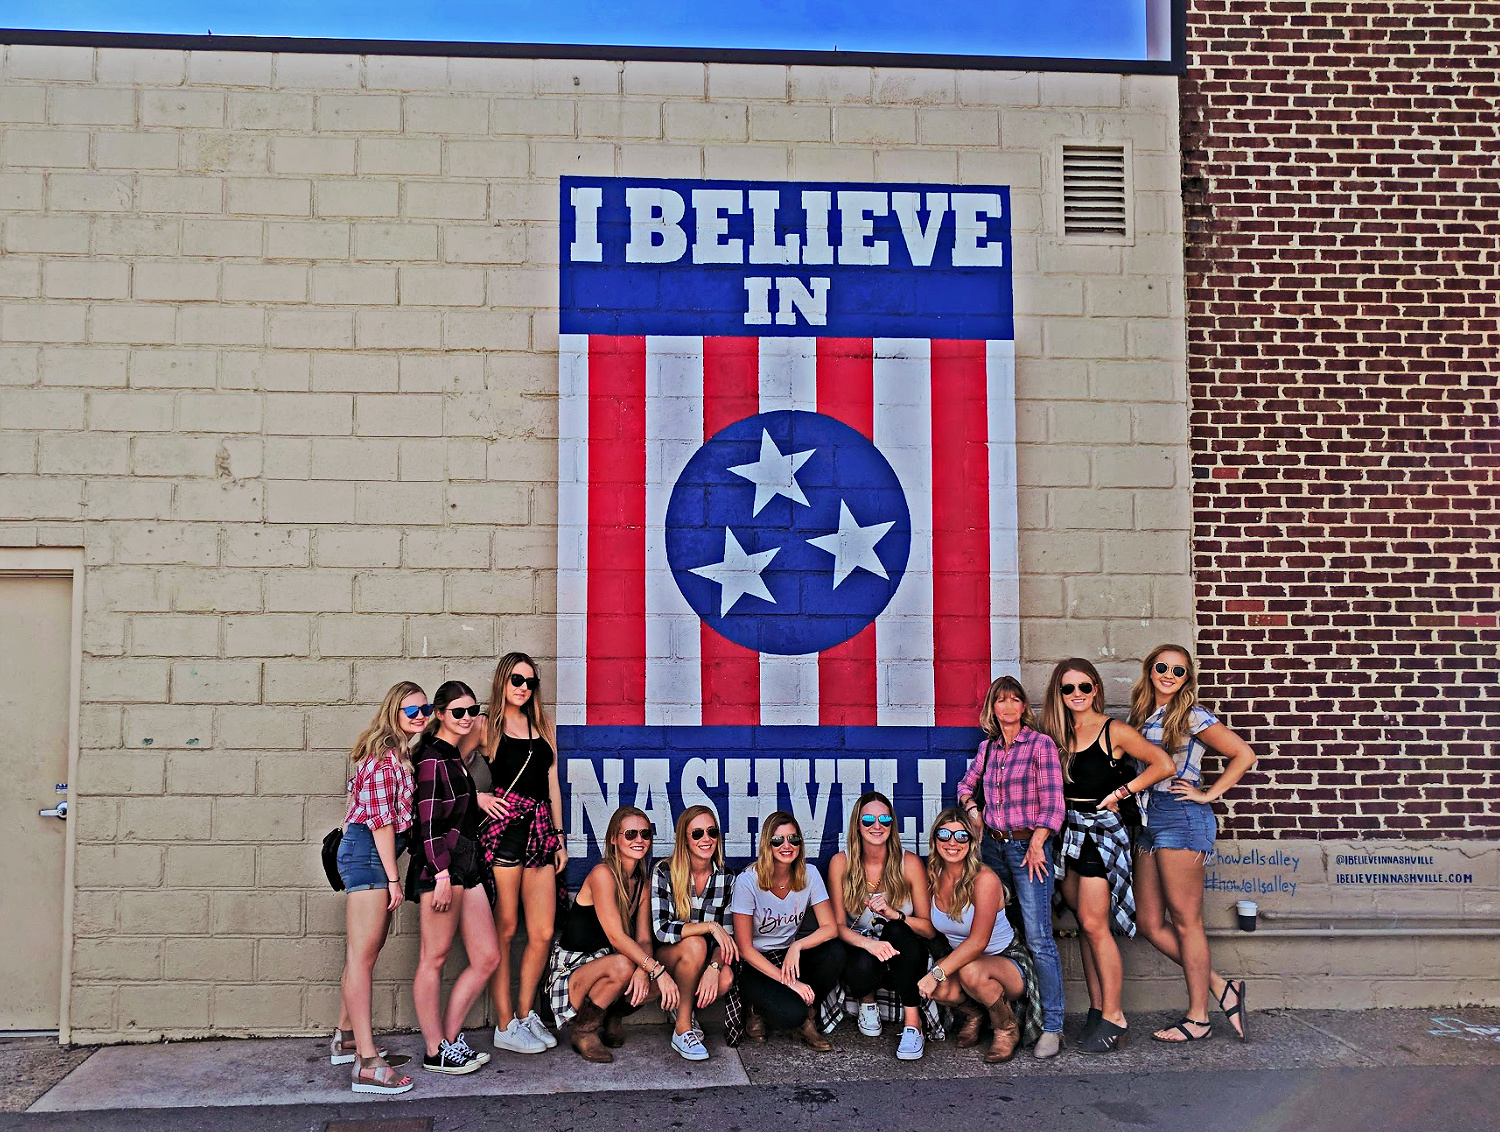 Girls posing with I Believe in Nashville mural.